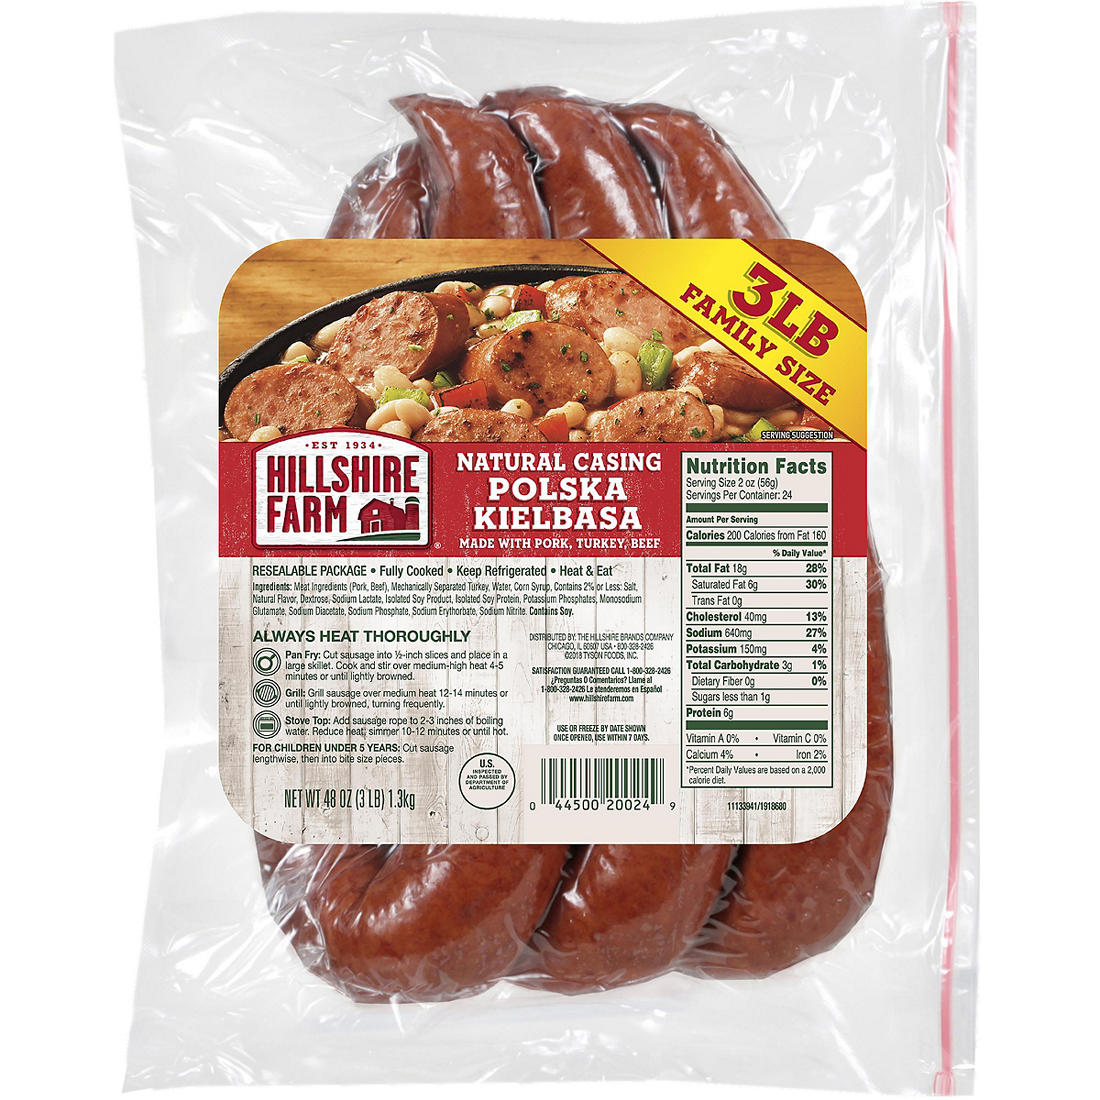 Hillshire Farm Polska Kielbasa Smoked Sausage Family Pack 48 Oz Bjs Wholesale Club